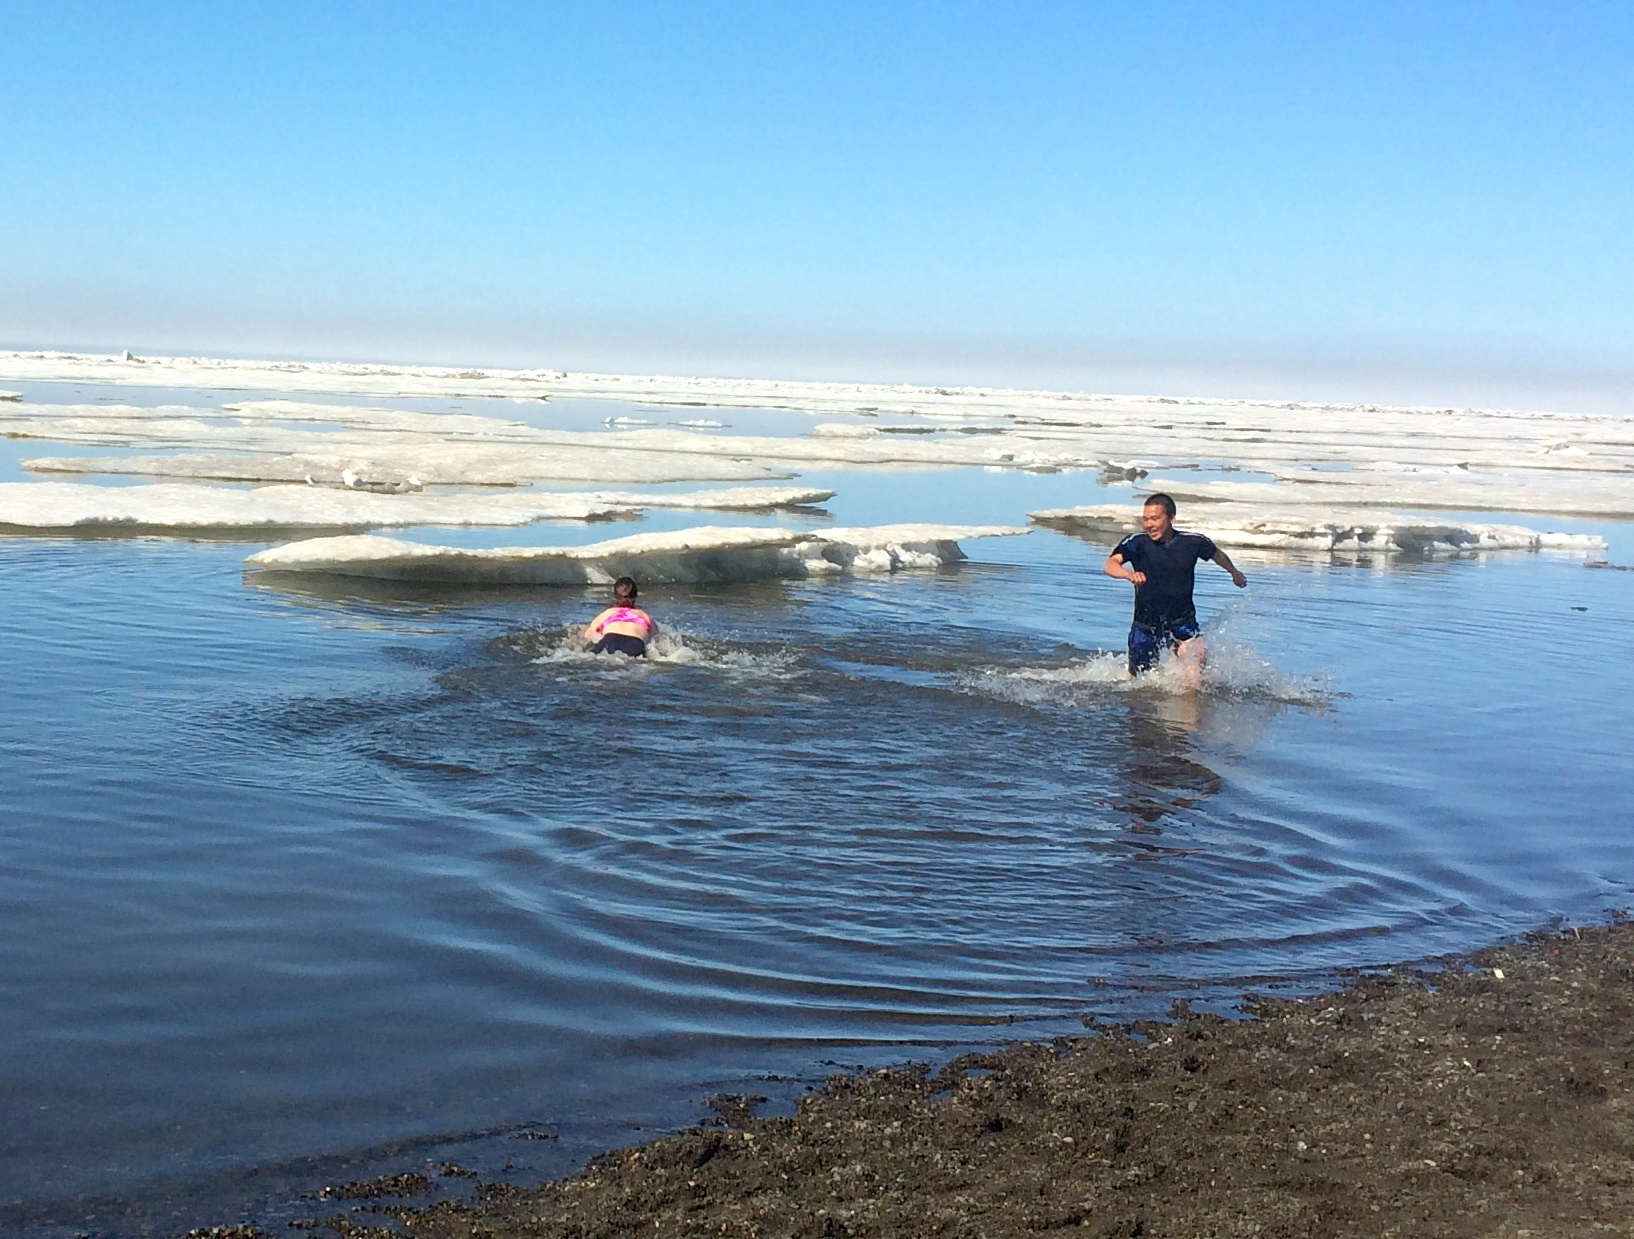 Geoffrey and I take our turn swimming out to touch the ice.